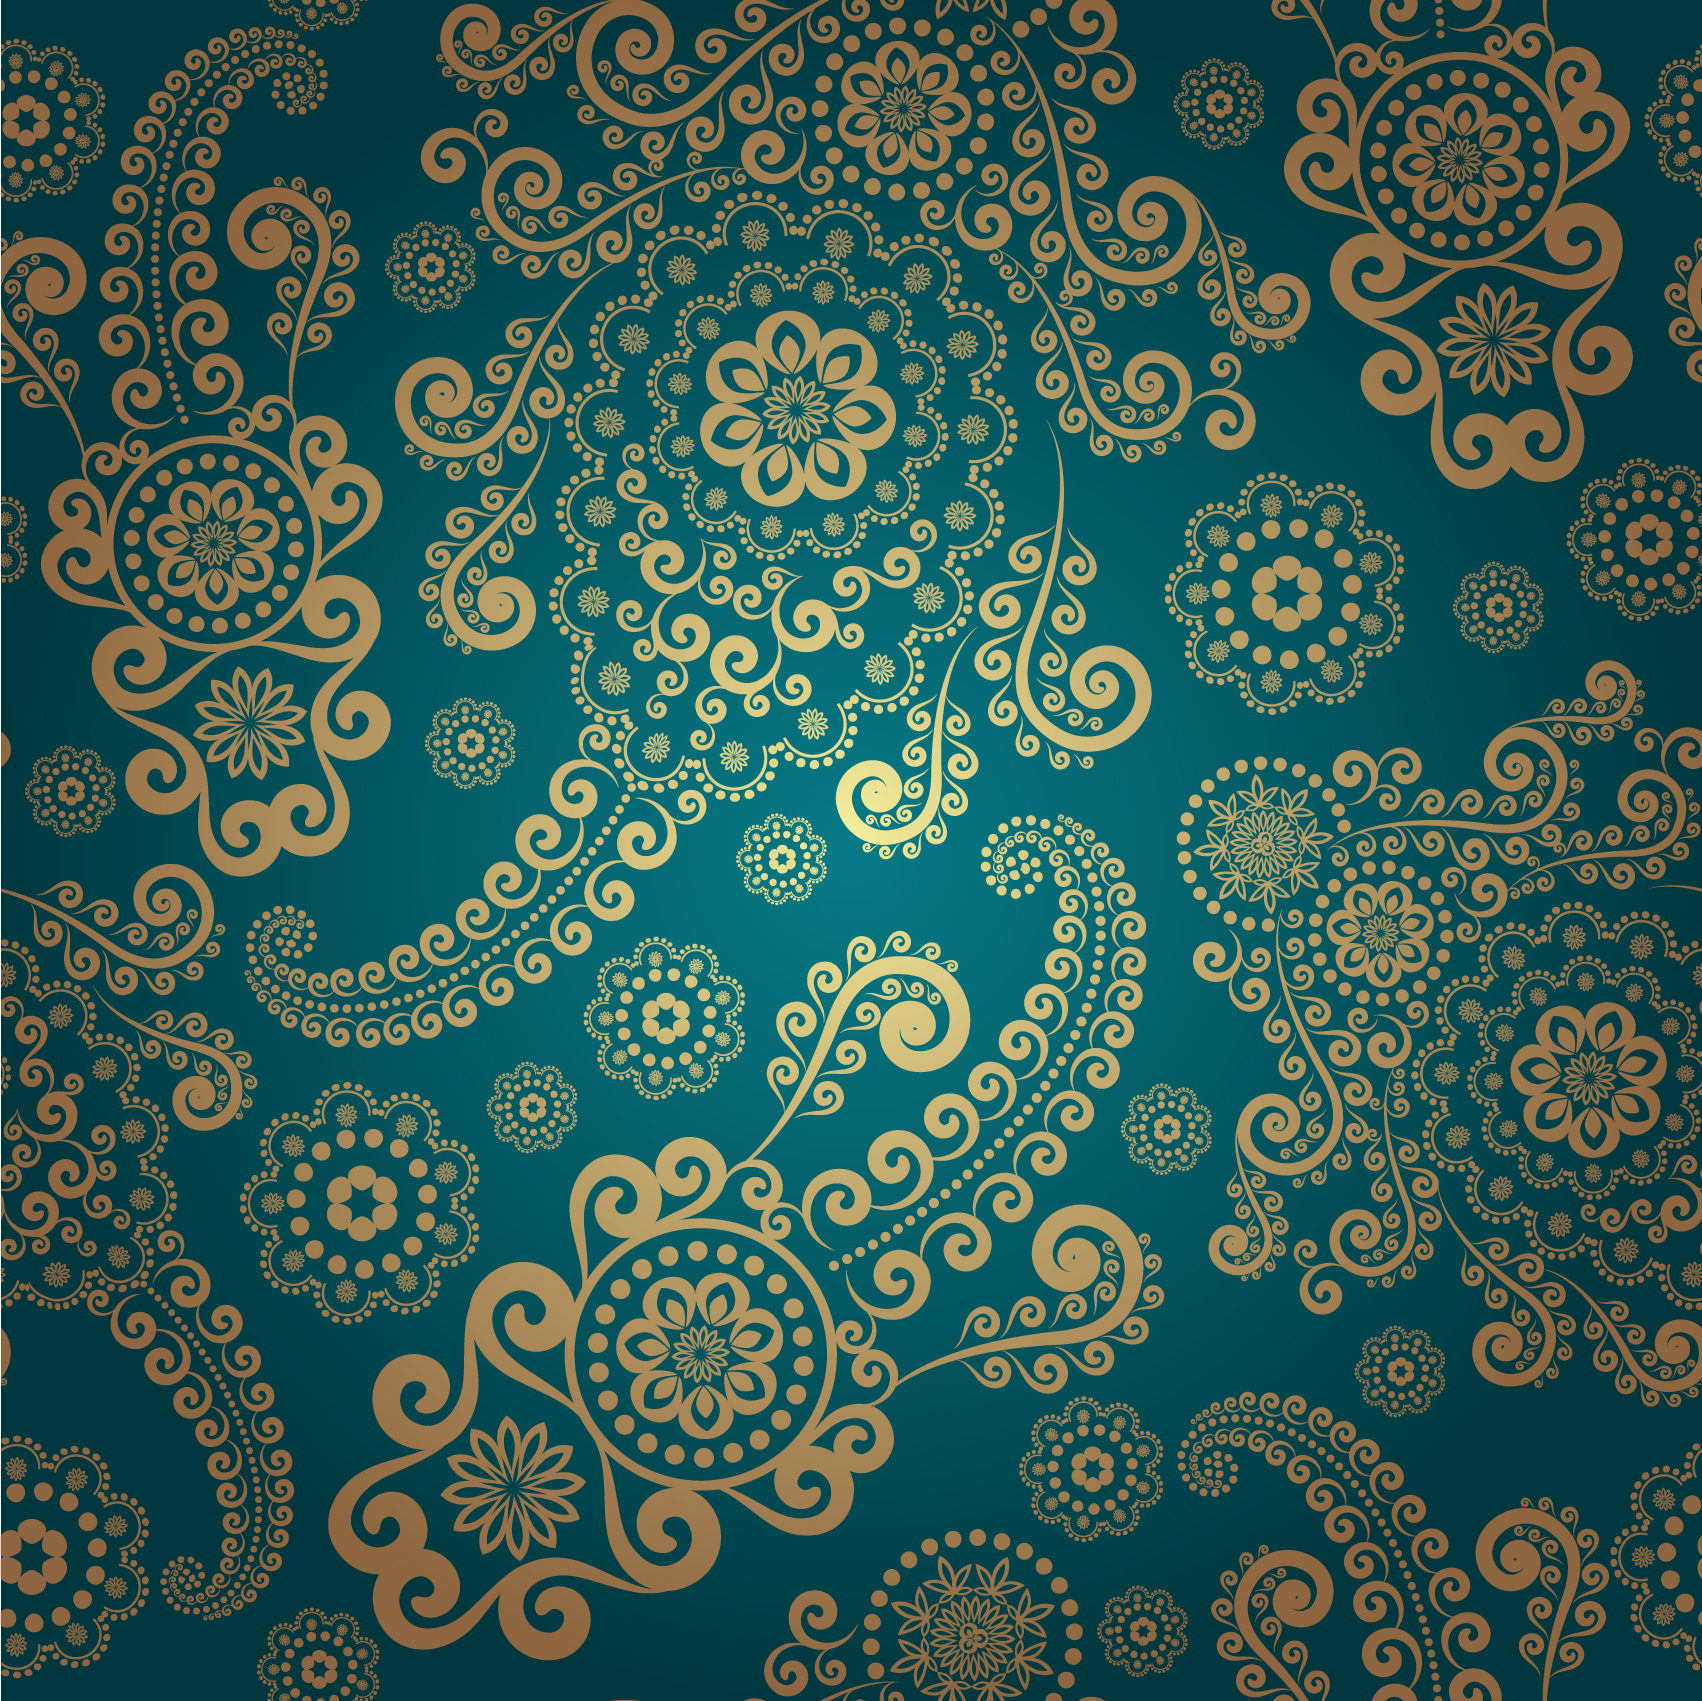 18 Pattern Free Vector Downloads Images - Free Vector ...